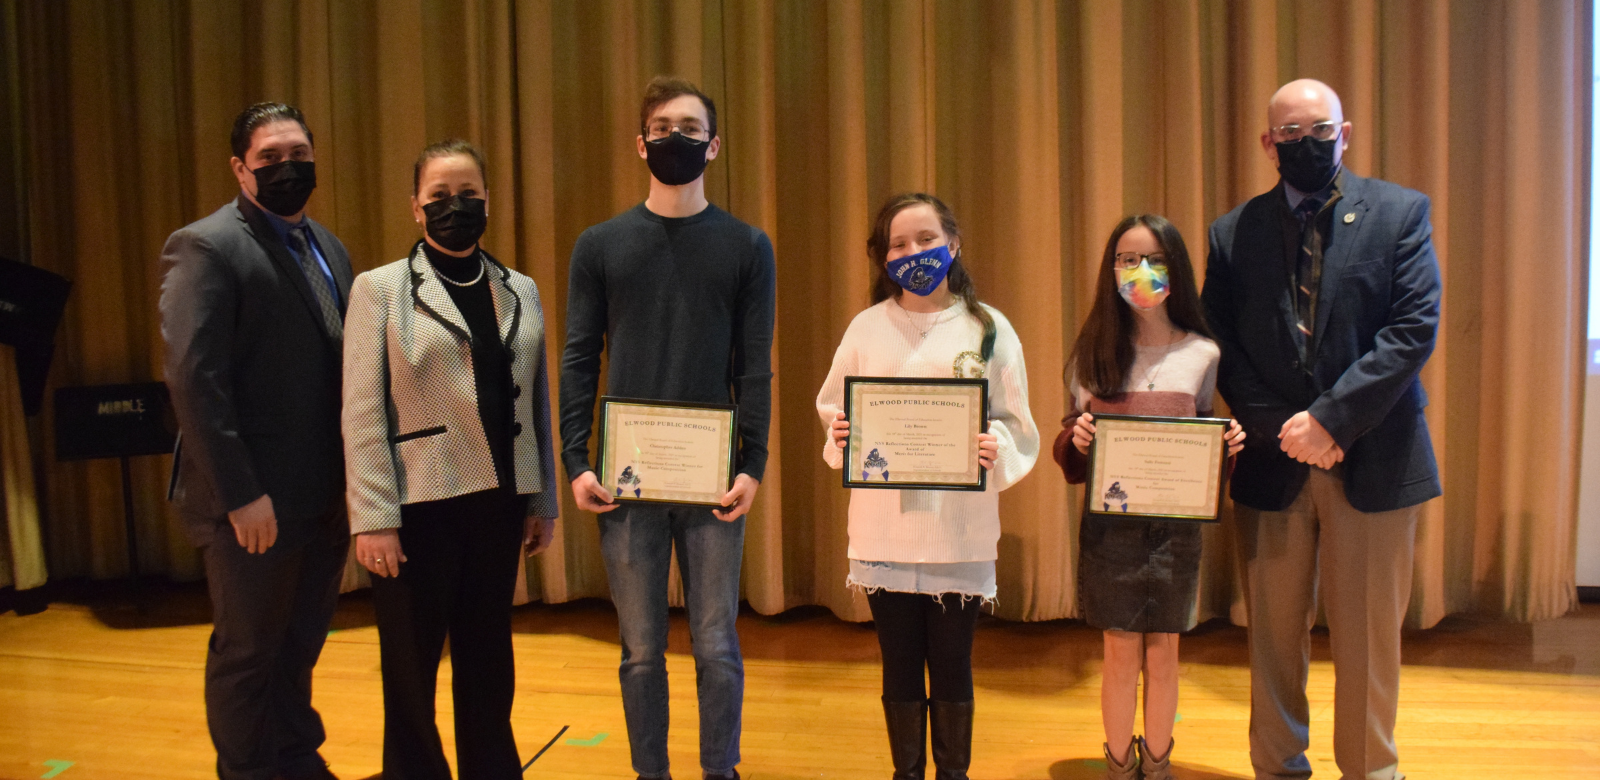 Elwood Students Win Awards in Literature and Composition